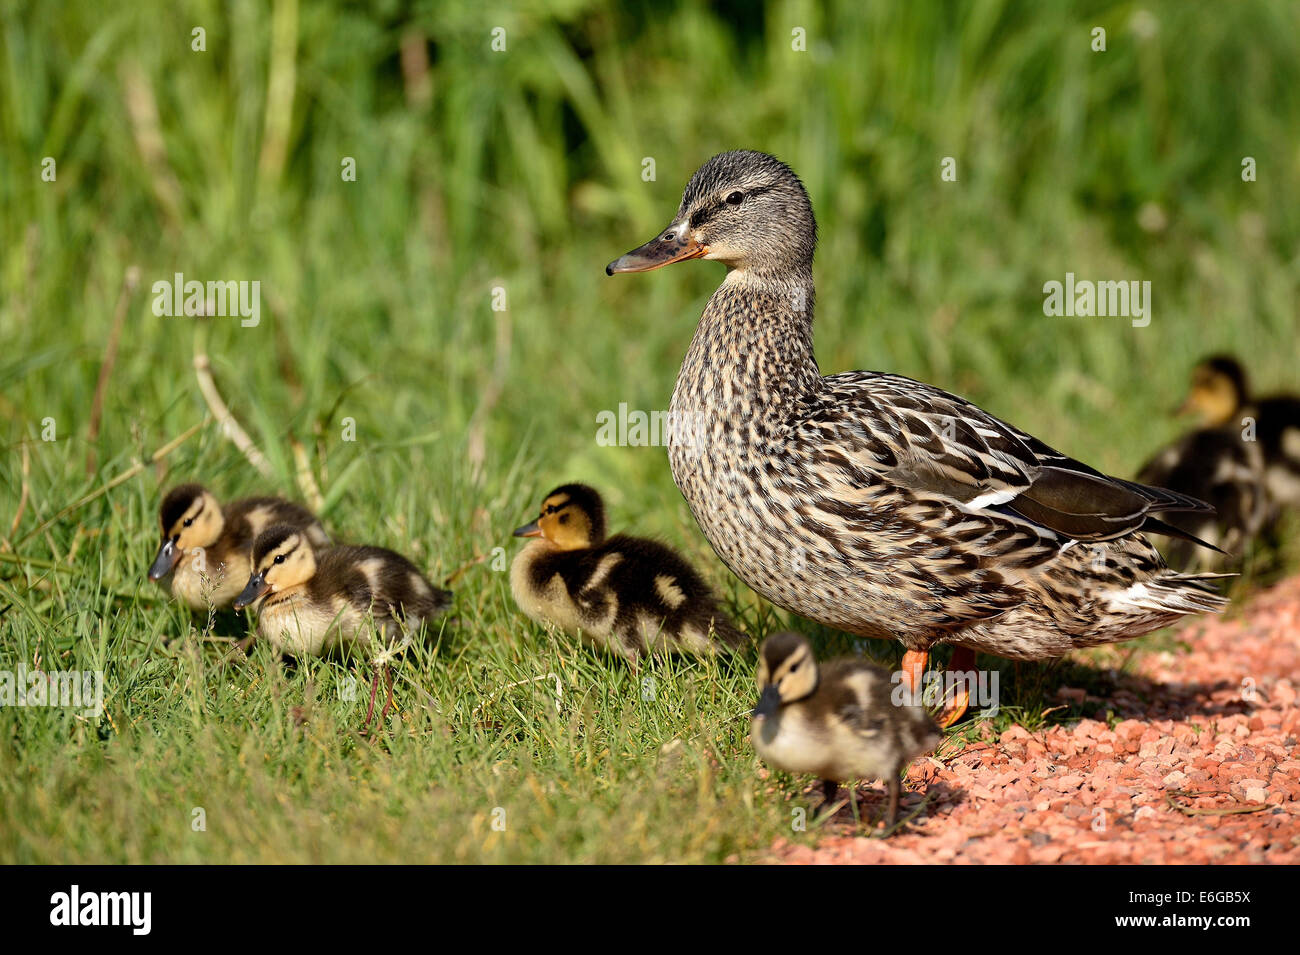 A female Mallard Duck with a brood oF new ducklings - Stock Image